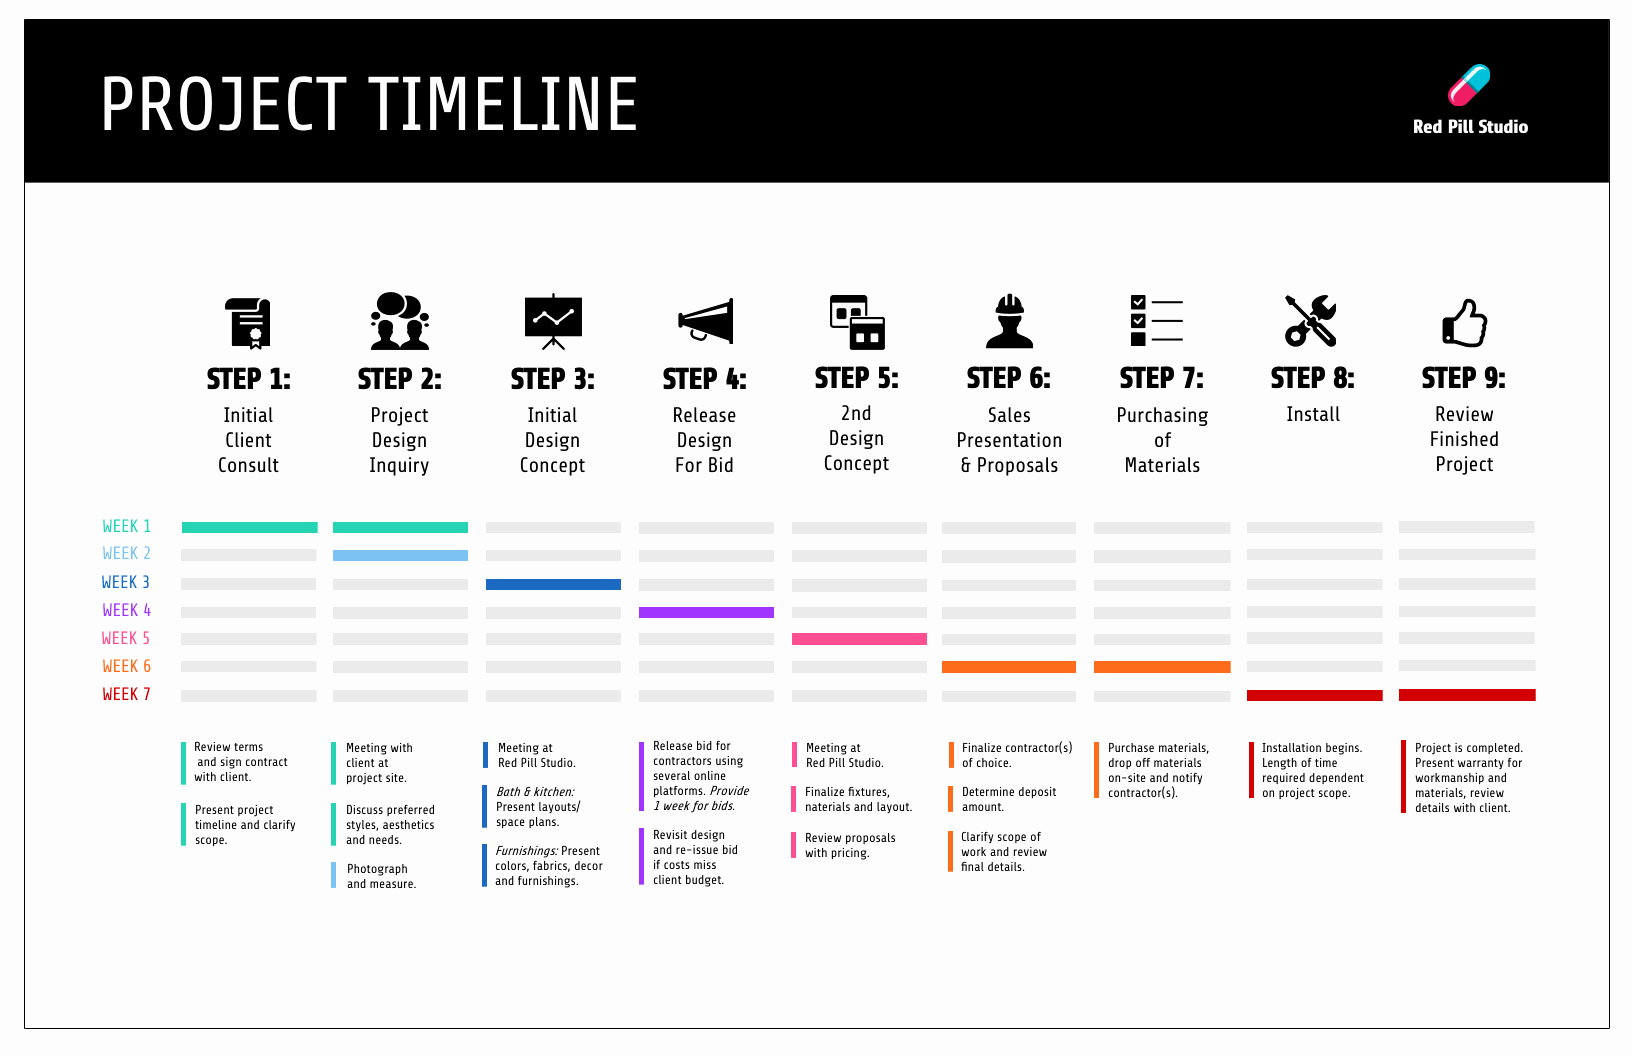 Sample Work Plan Template Luxury 15 Project Plan Templates & Examples to Align Your Team